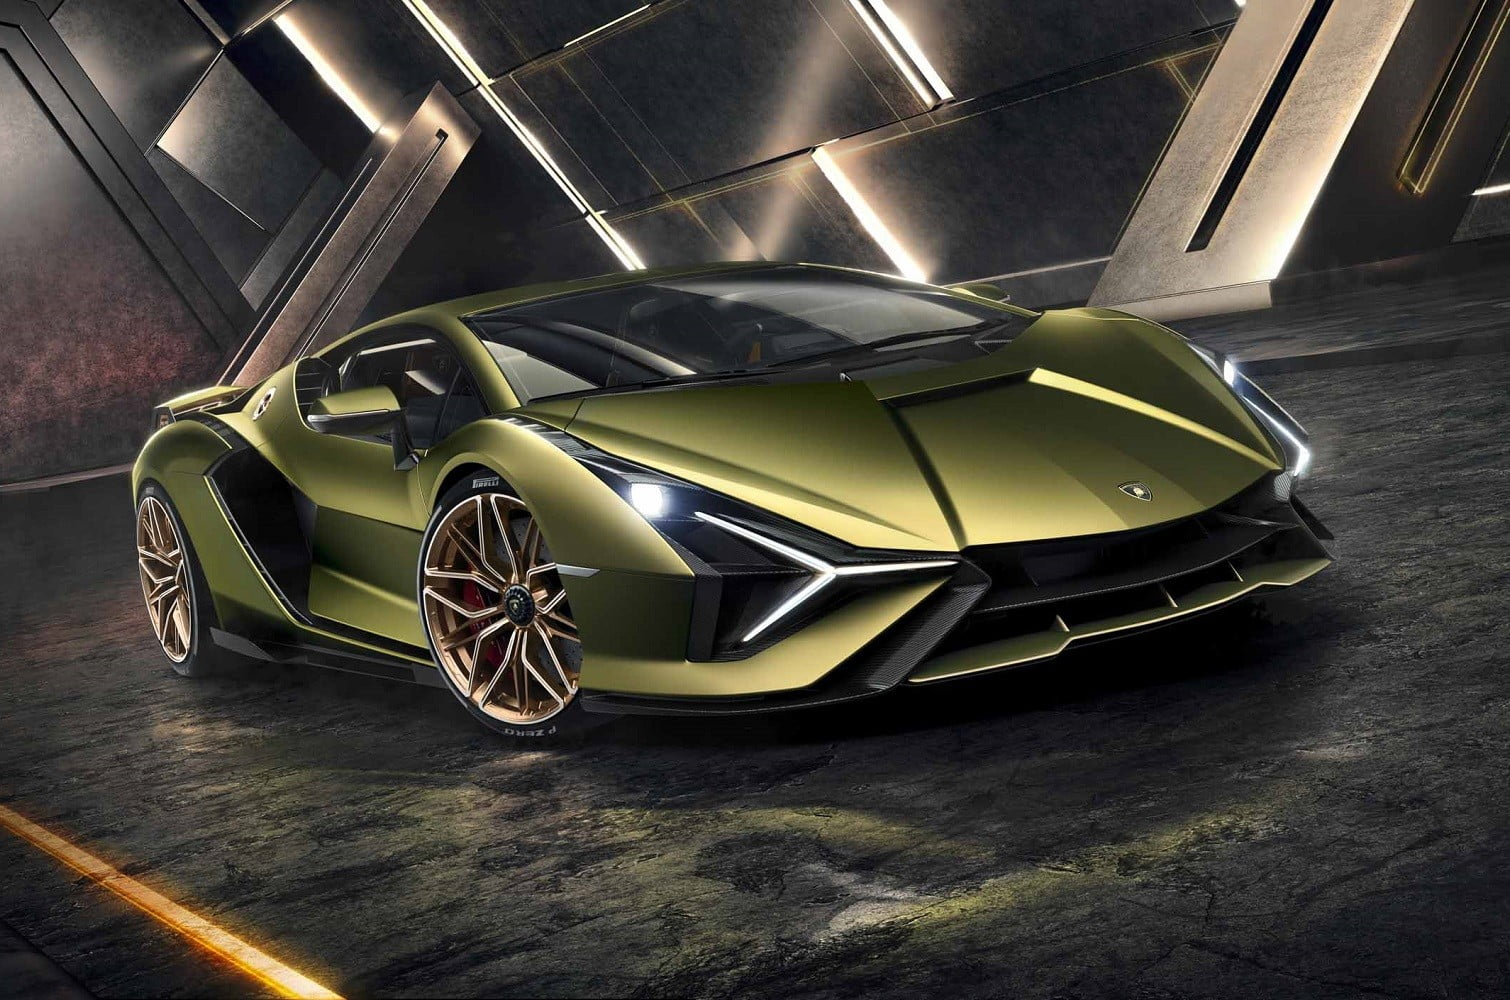 Lamborghini and MIT want to replace batteries with supercapacitors